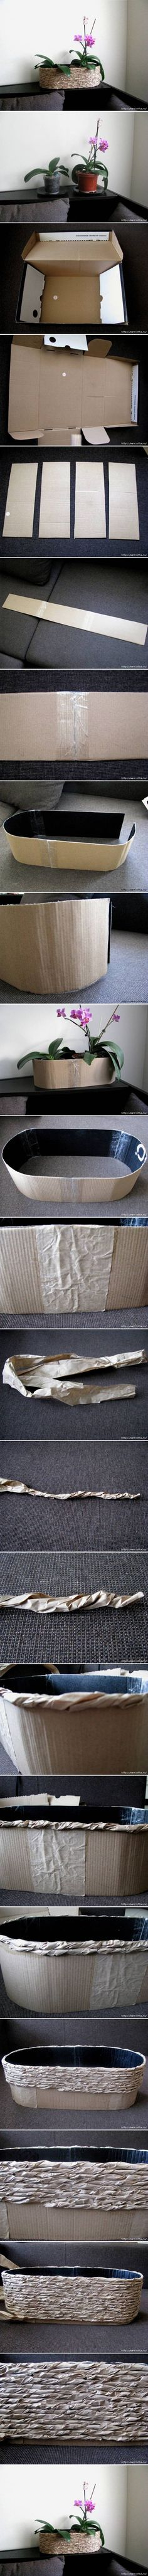 DIY Cardboard and Packaging Paper Plant Pot DIY Cardboard and Packaging Paper Plant Pot